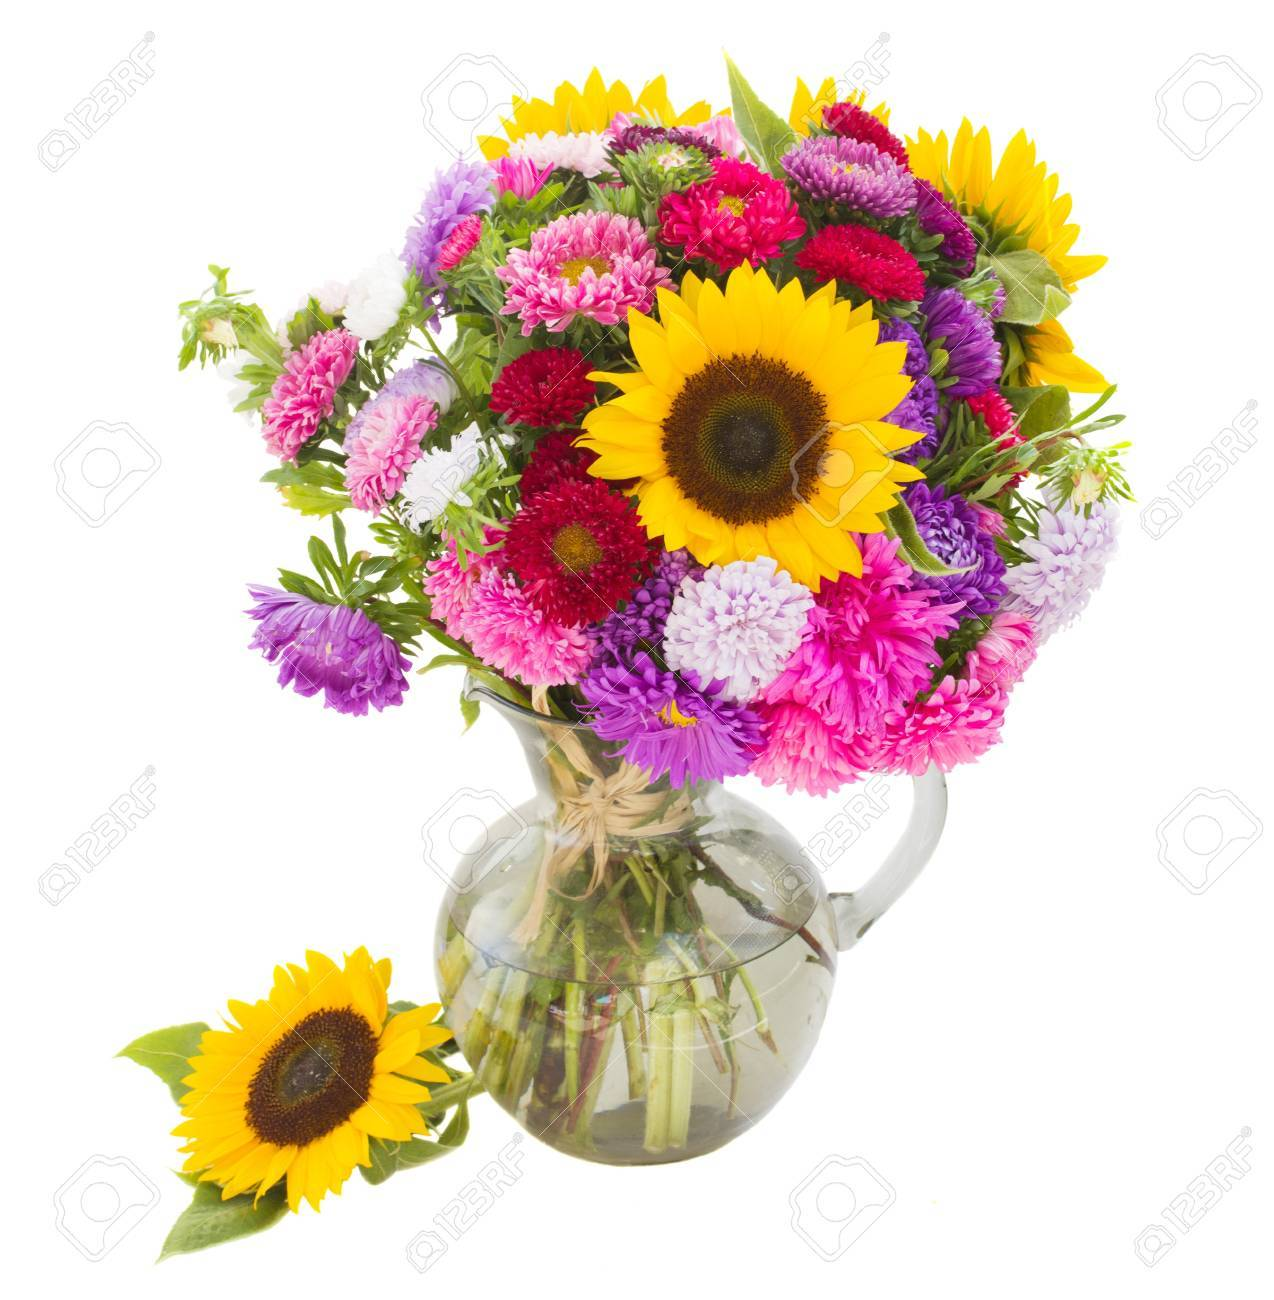 Bouquet Of Autumn Flowers In Vase Isolated On White Background Stock